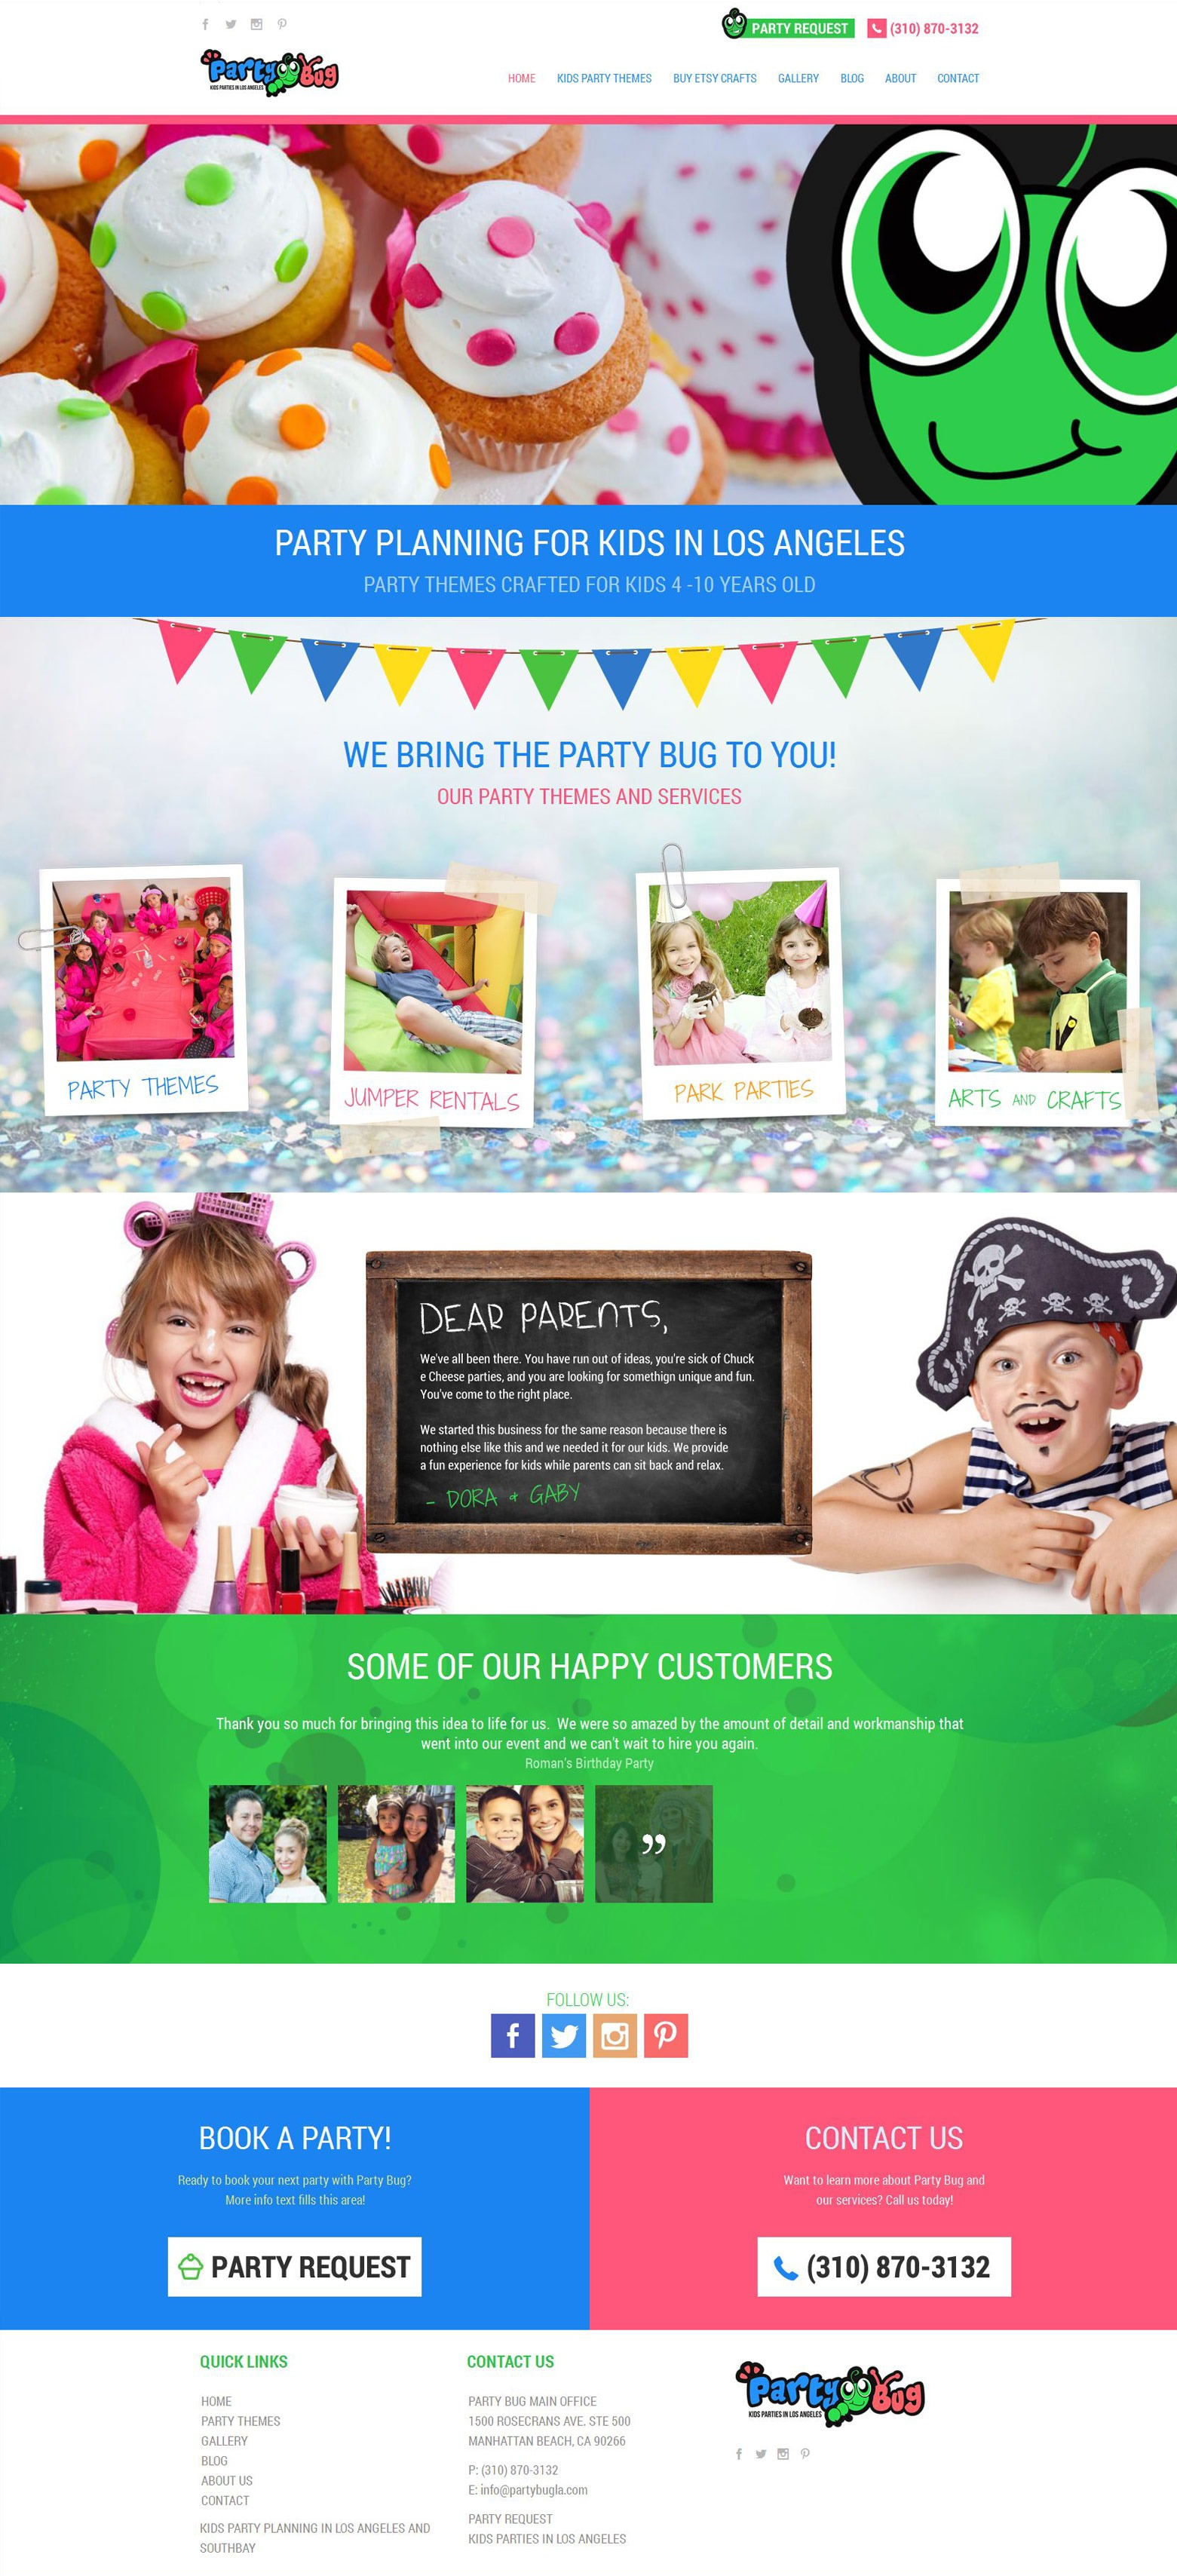 LA Angeles Party Planning Web Design Company